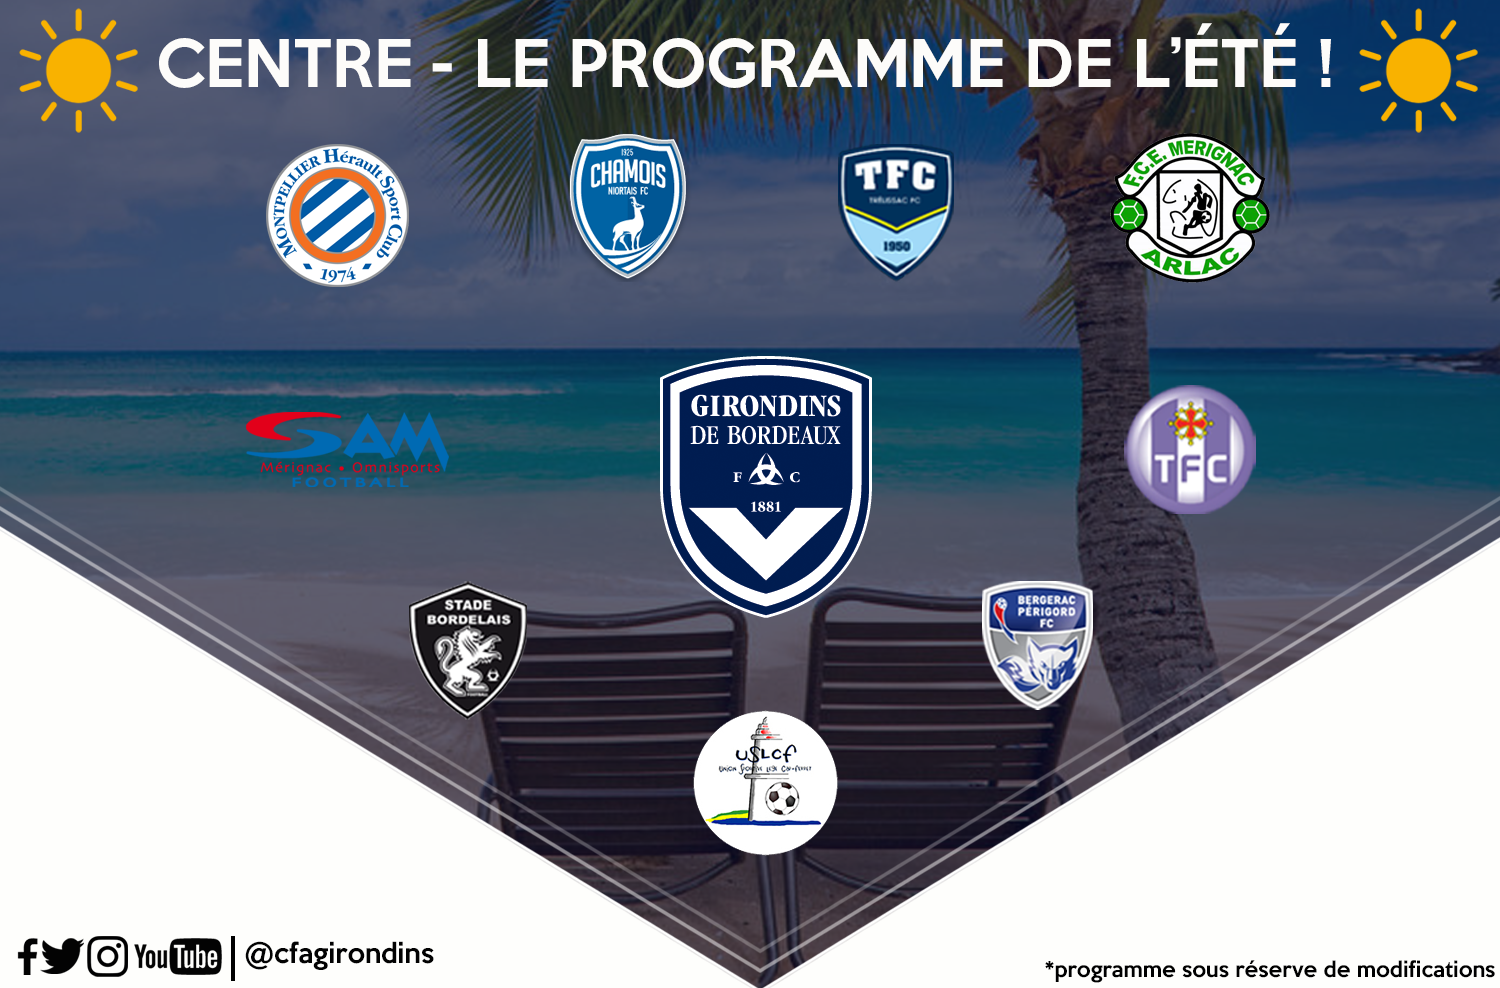 Cfa Girondins : Le programme des matchs amicaux - Formation Girondins